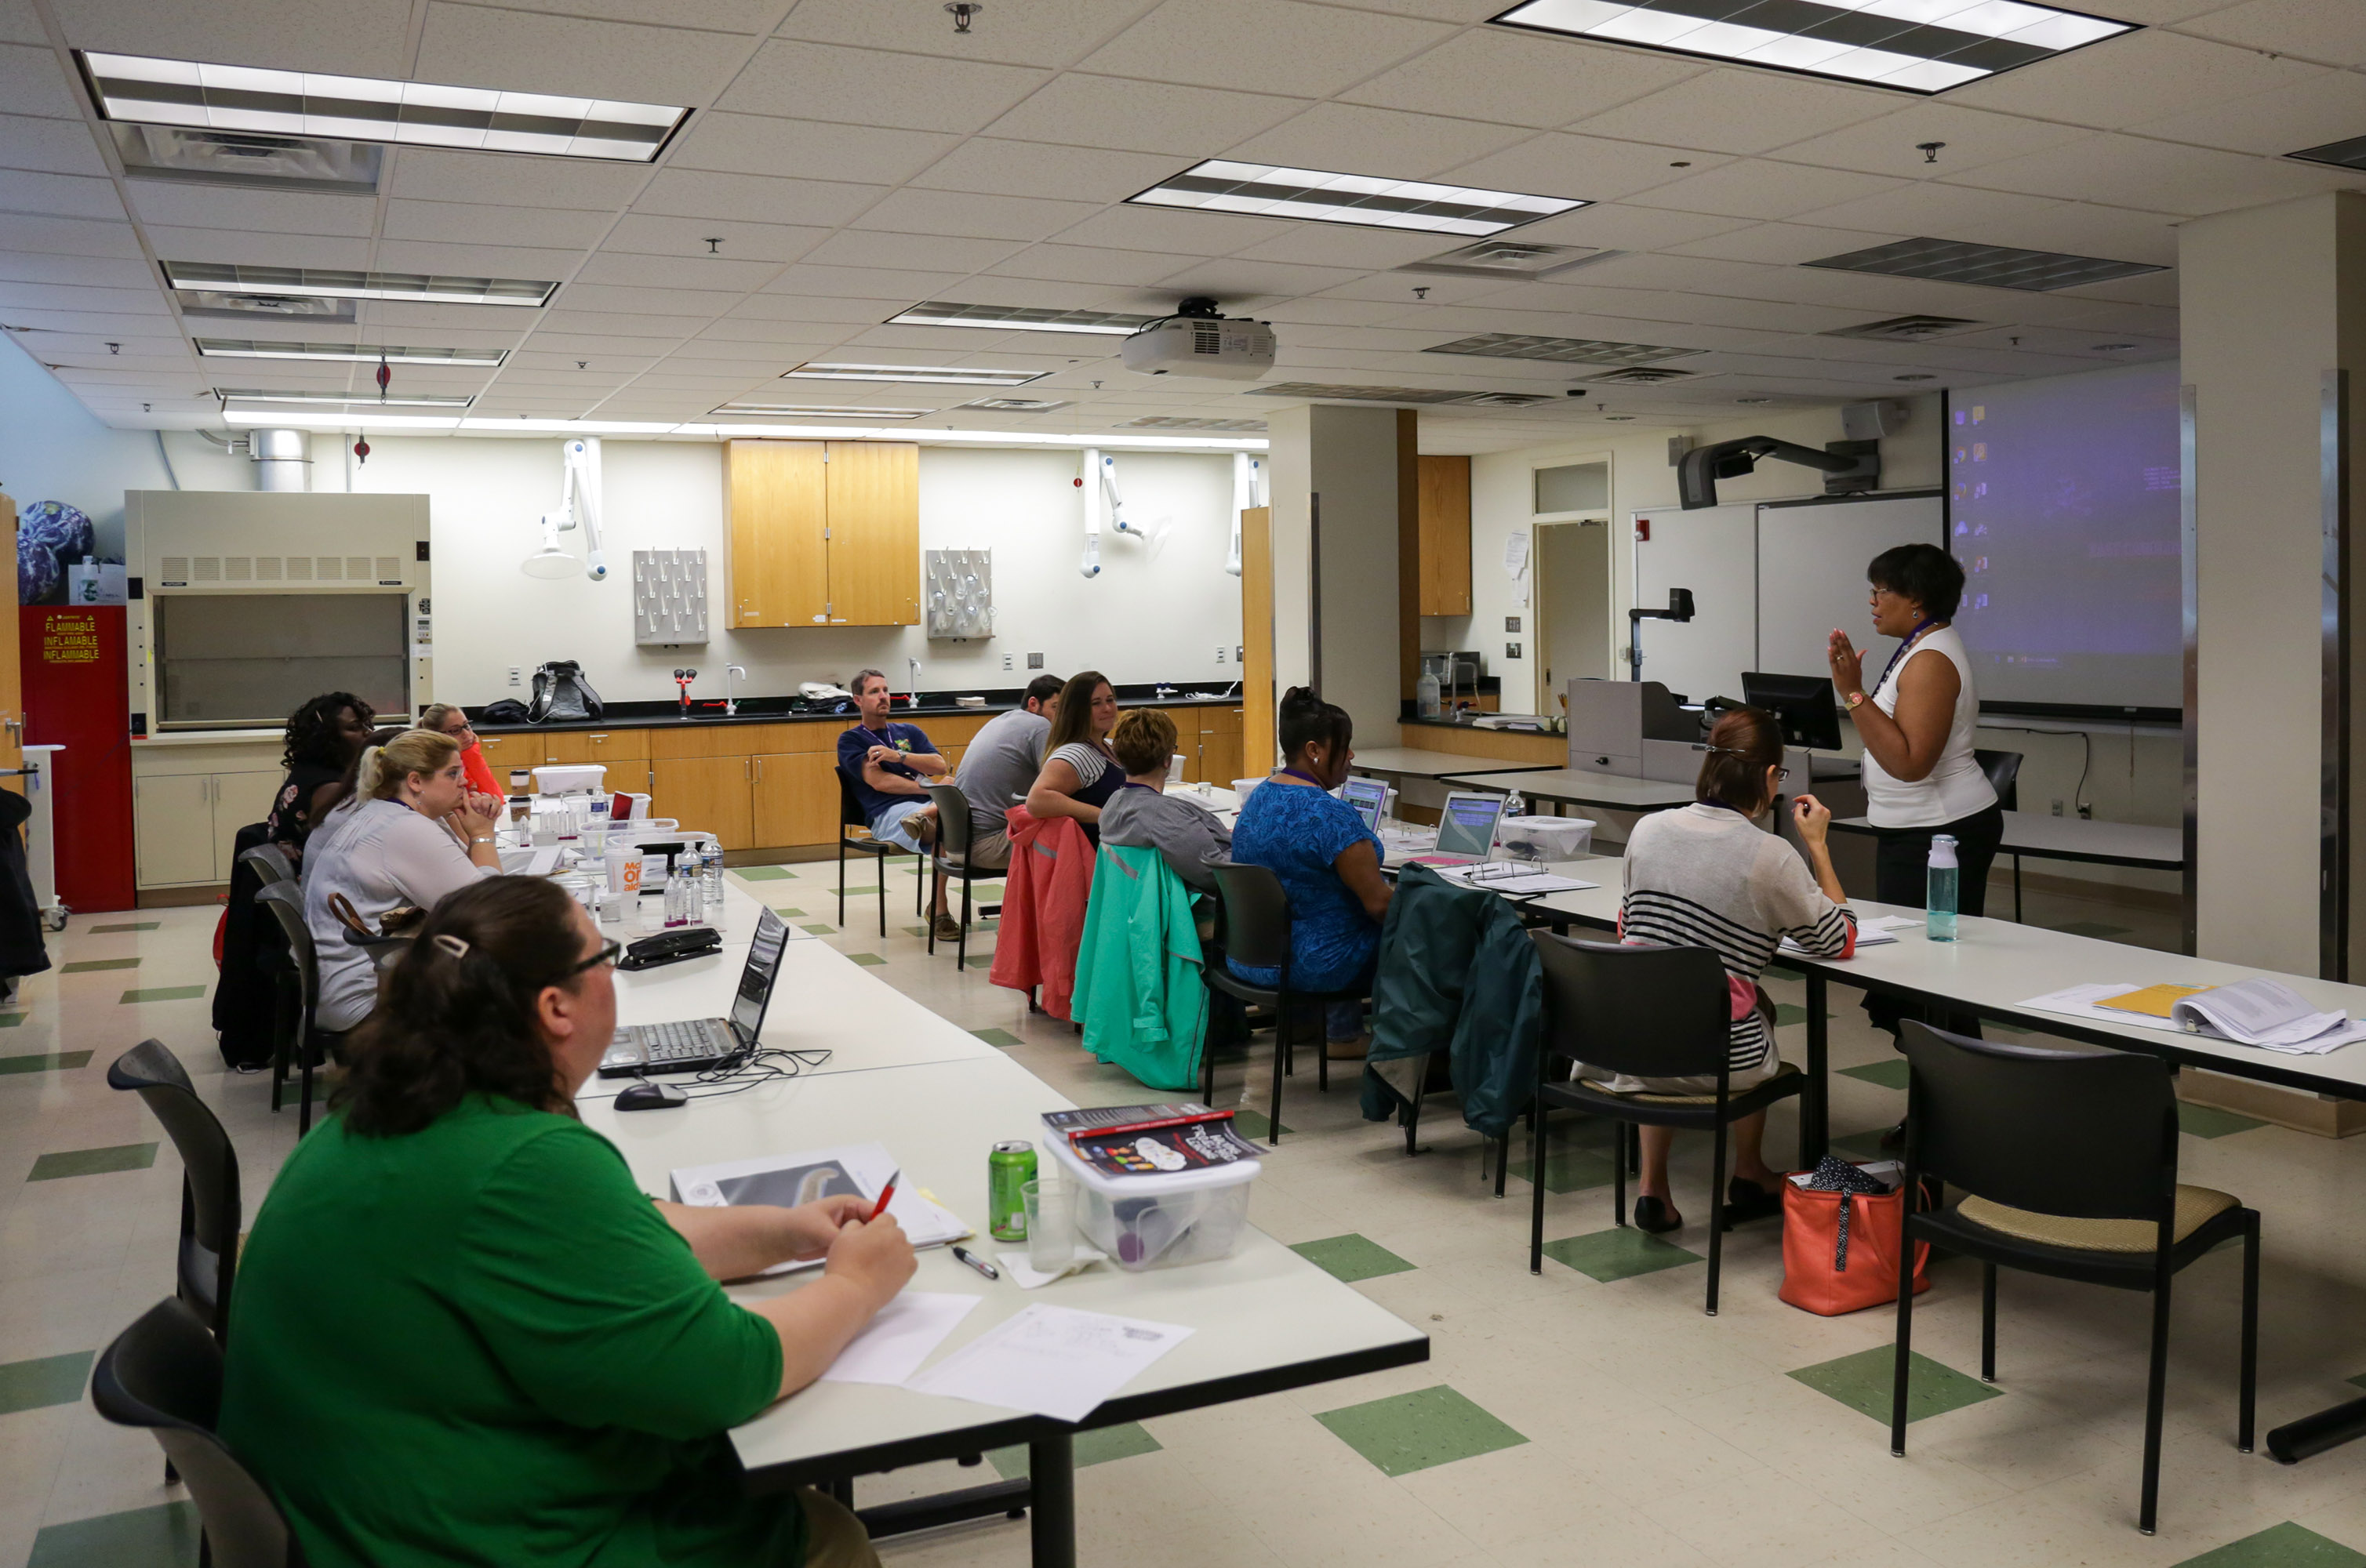 Teachers from five local counties learn a drug dependency exercise to take back to their classrooms during a Science Education Against Drug Abuse Partnership workshop at ECU June 21.